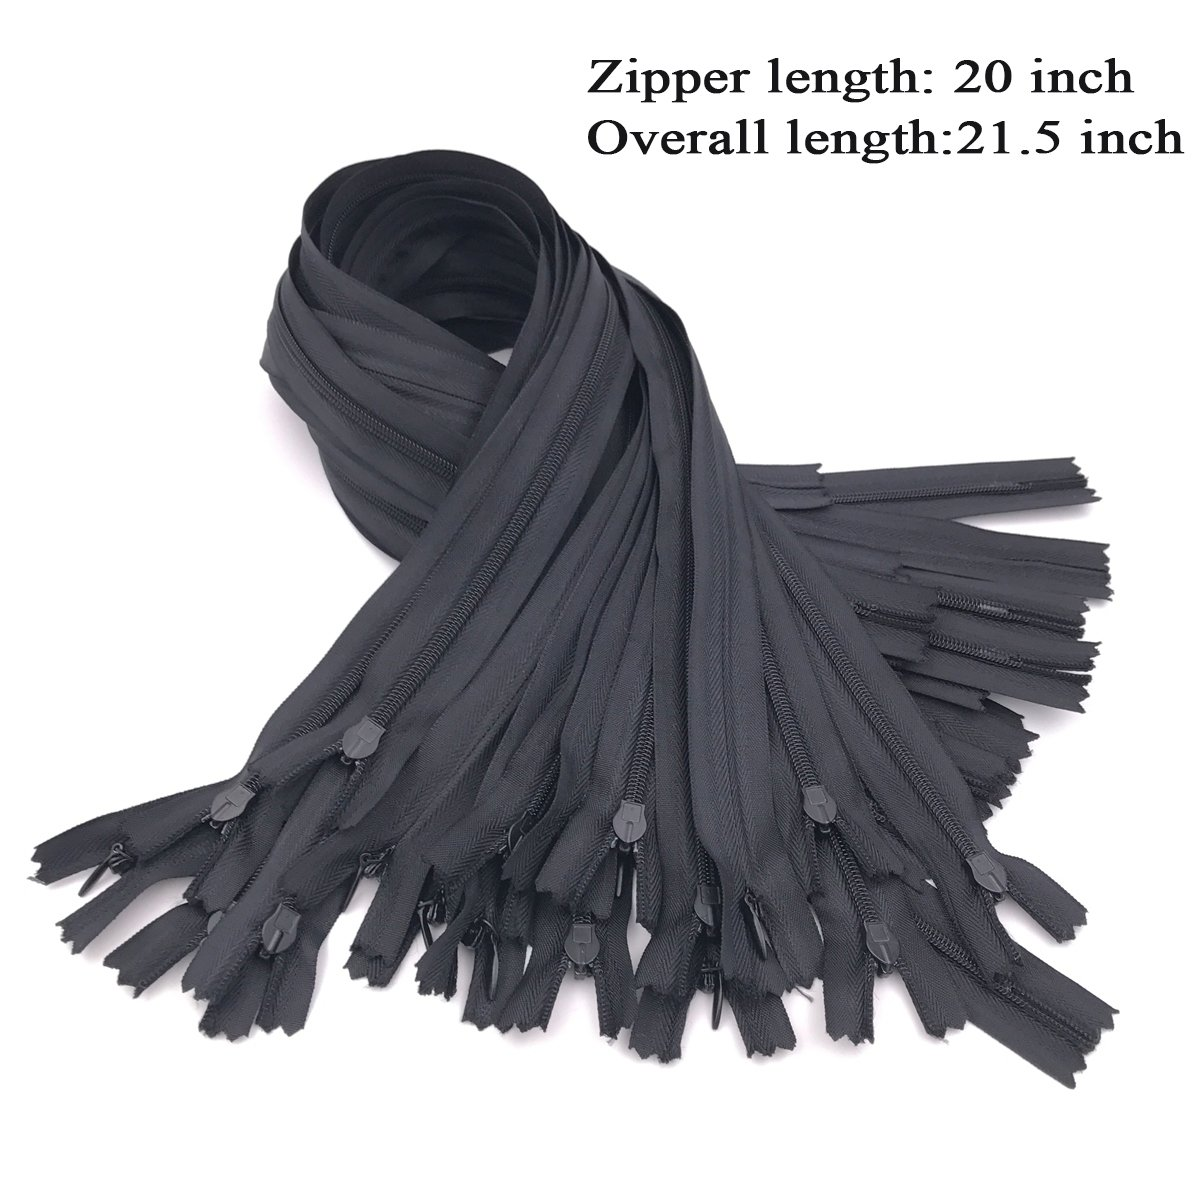 25PCS Nylon Invisible Zipper,DIY Sewing Zippers for Handmade Garment//Bags//Home Textile,Tailor Sewer Crafters Special 18 inch,White